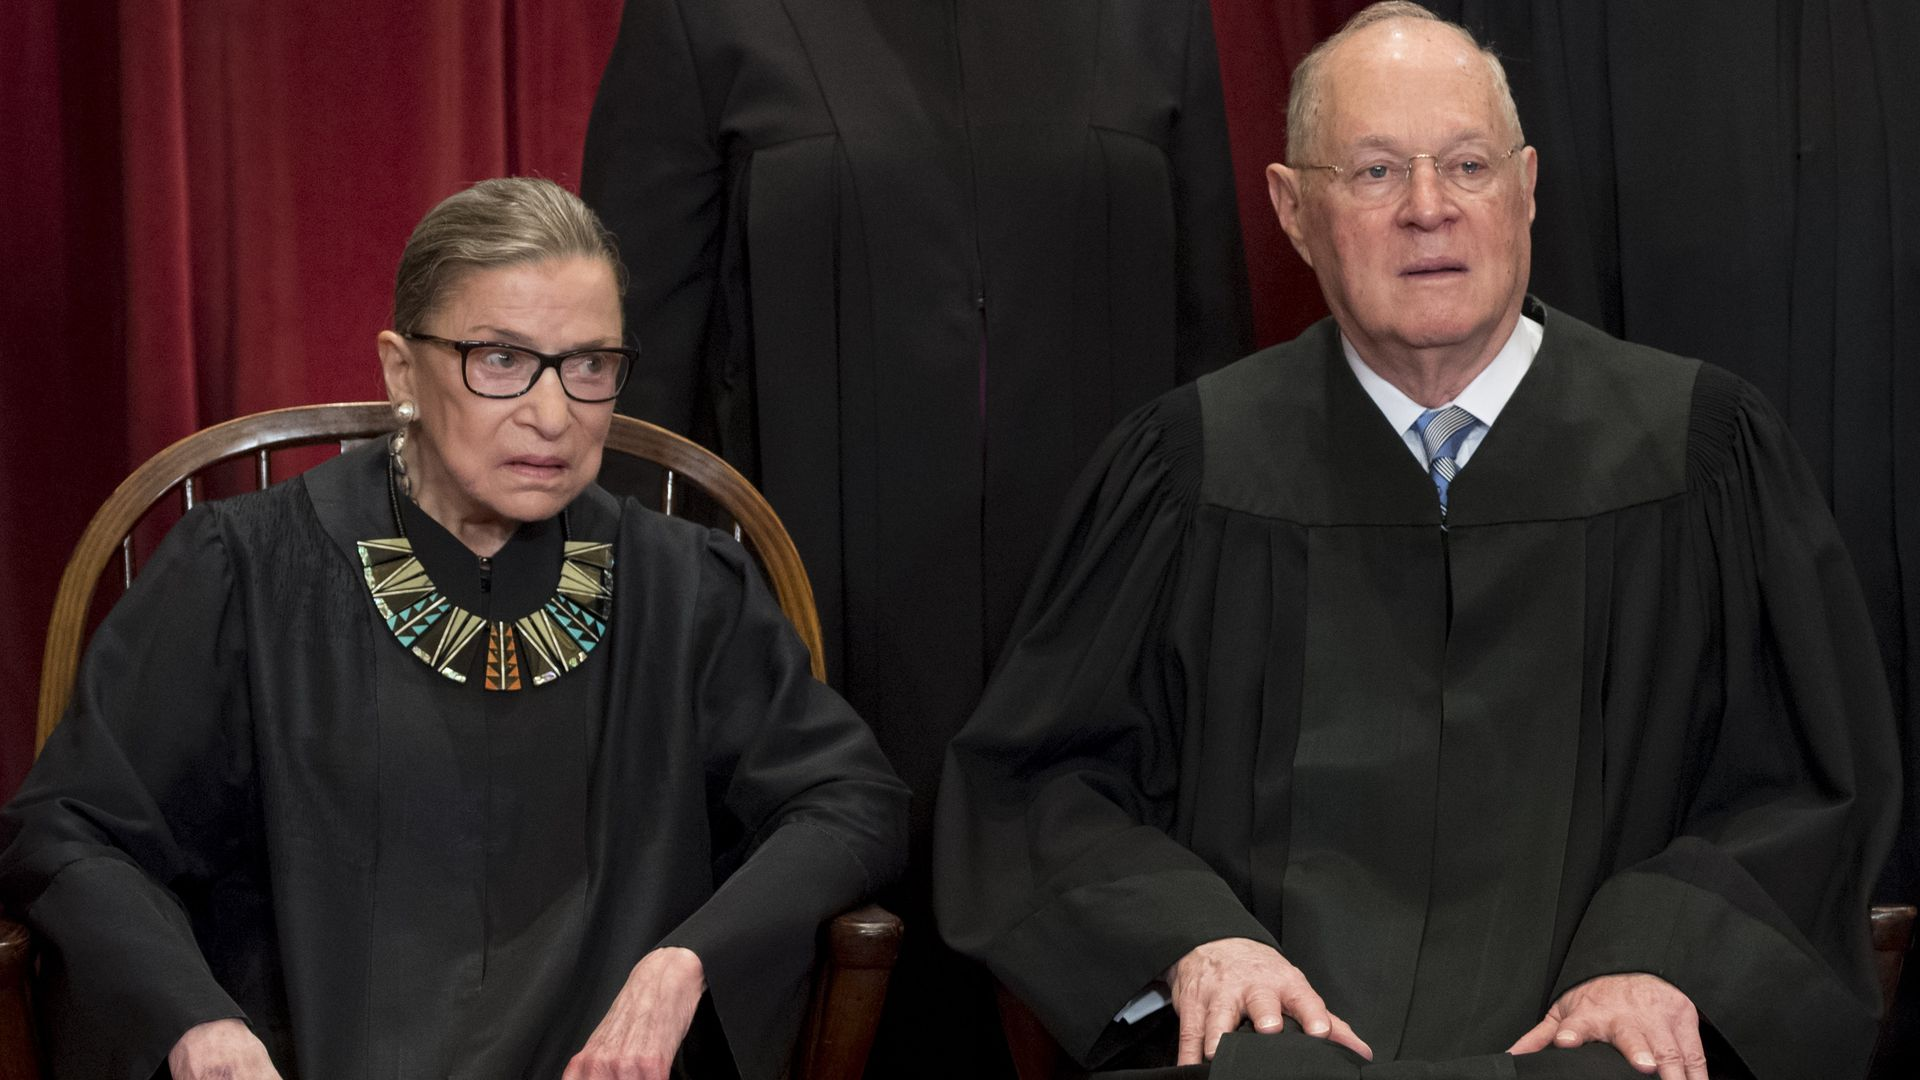 Justices Ruth Bader Ginsburg and Anthony Kennedy